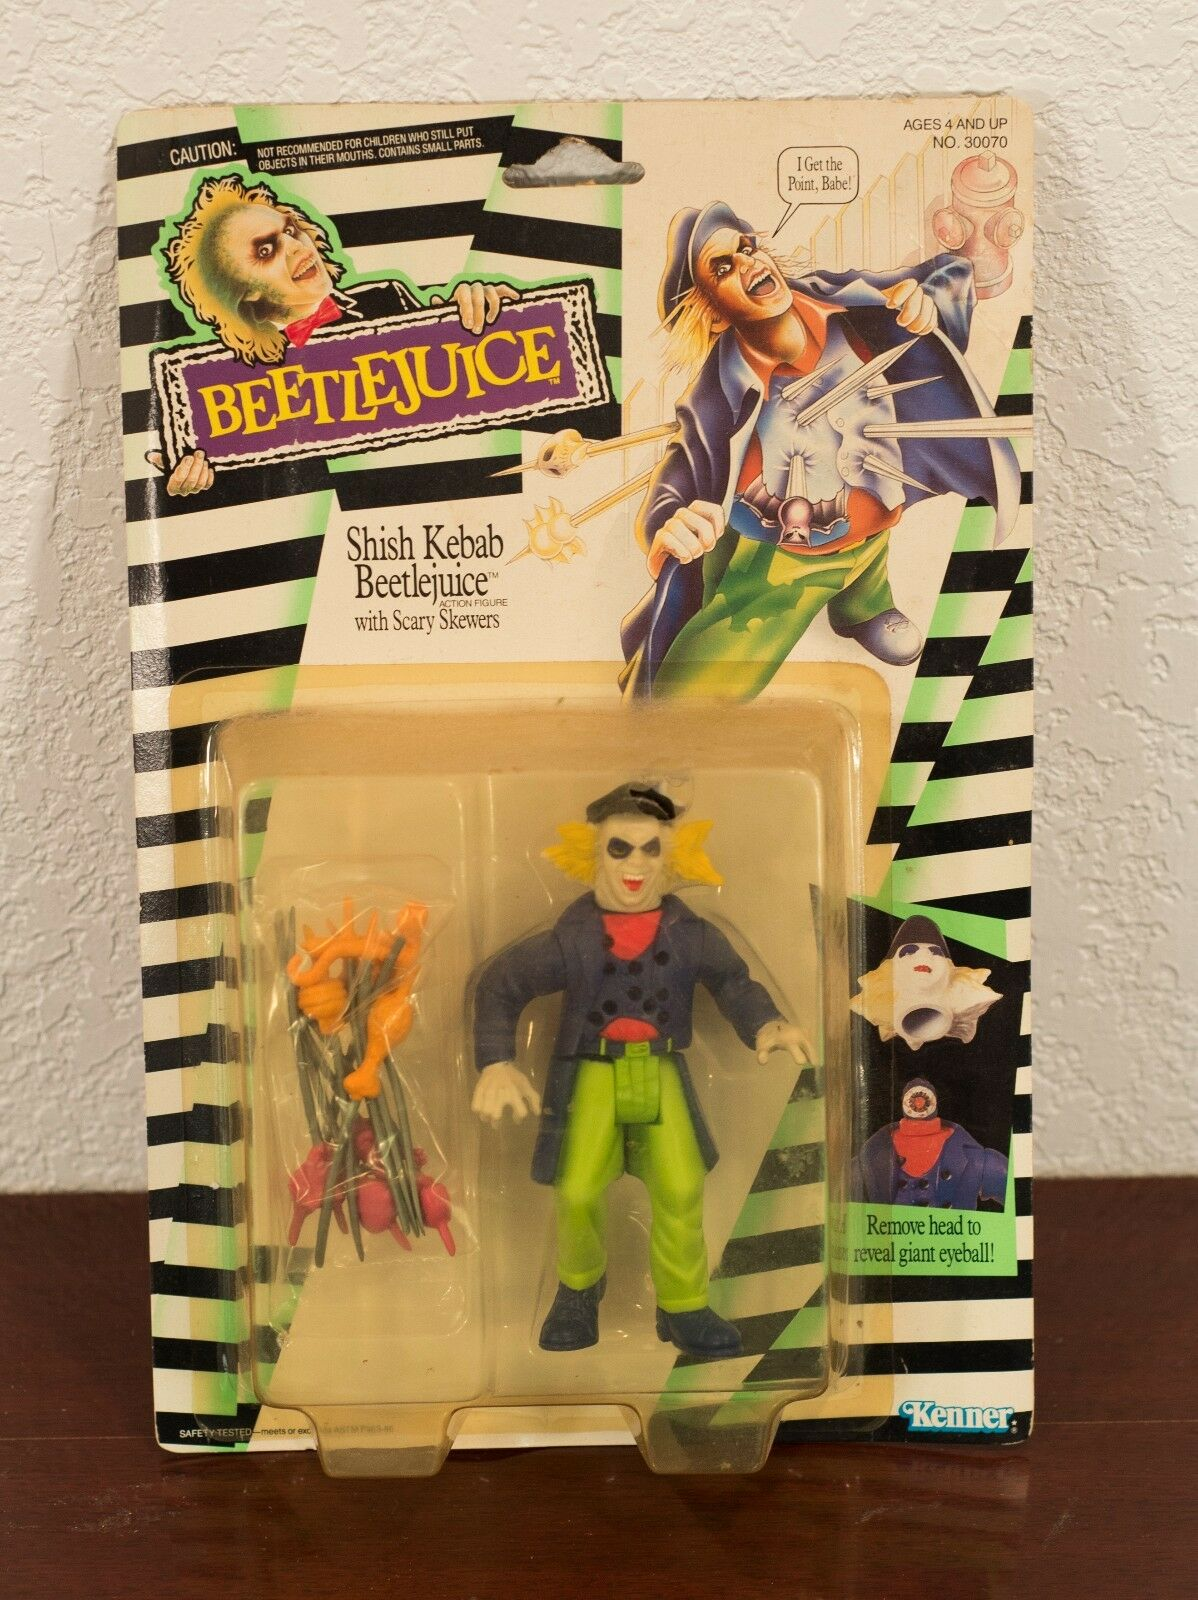 1989 BEETLEJUICE SHISH KEBAB BEETLEJUICE ACTION FIGURE MOC